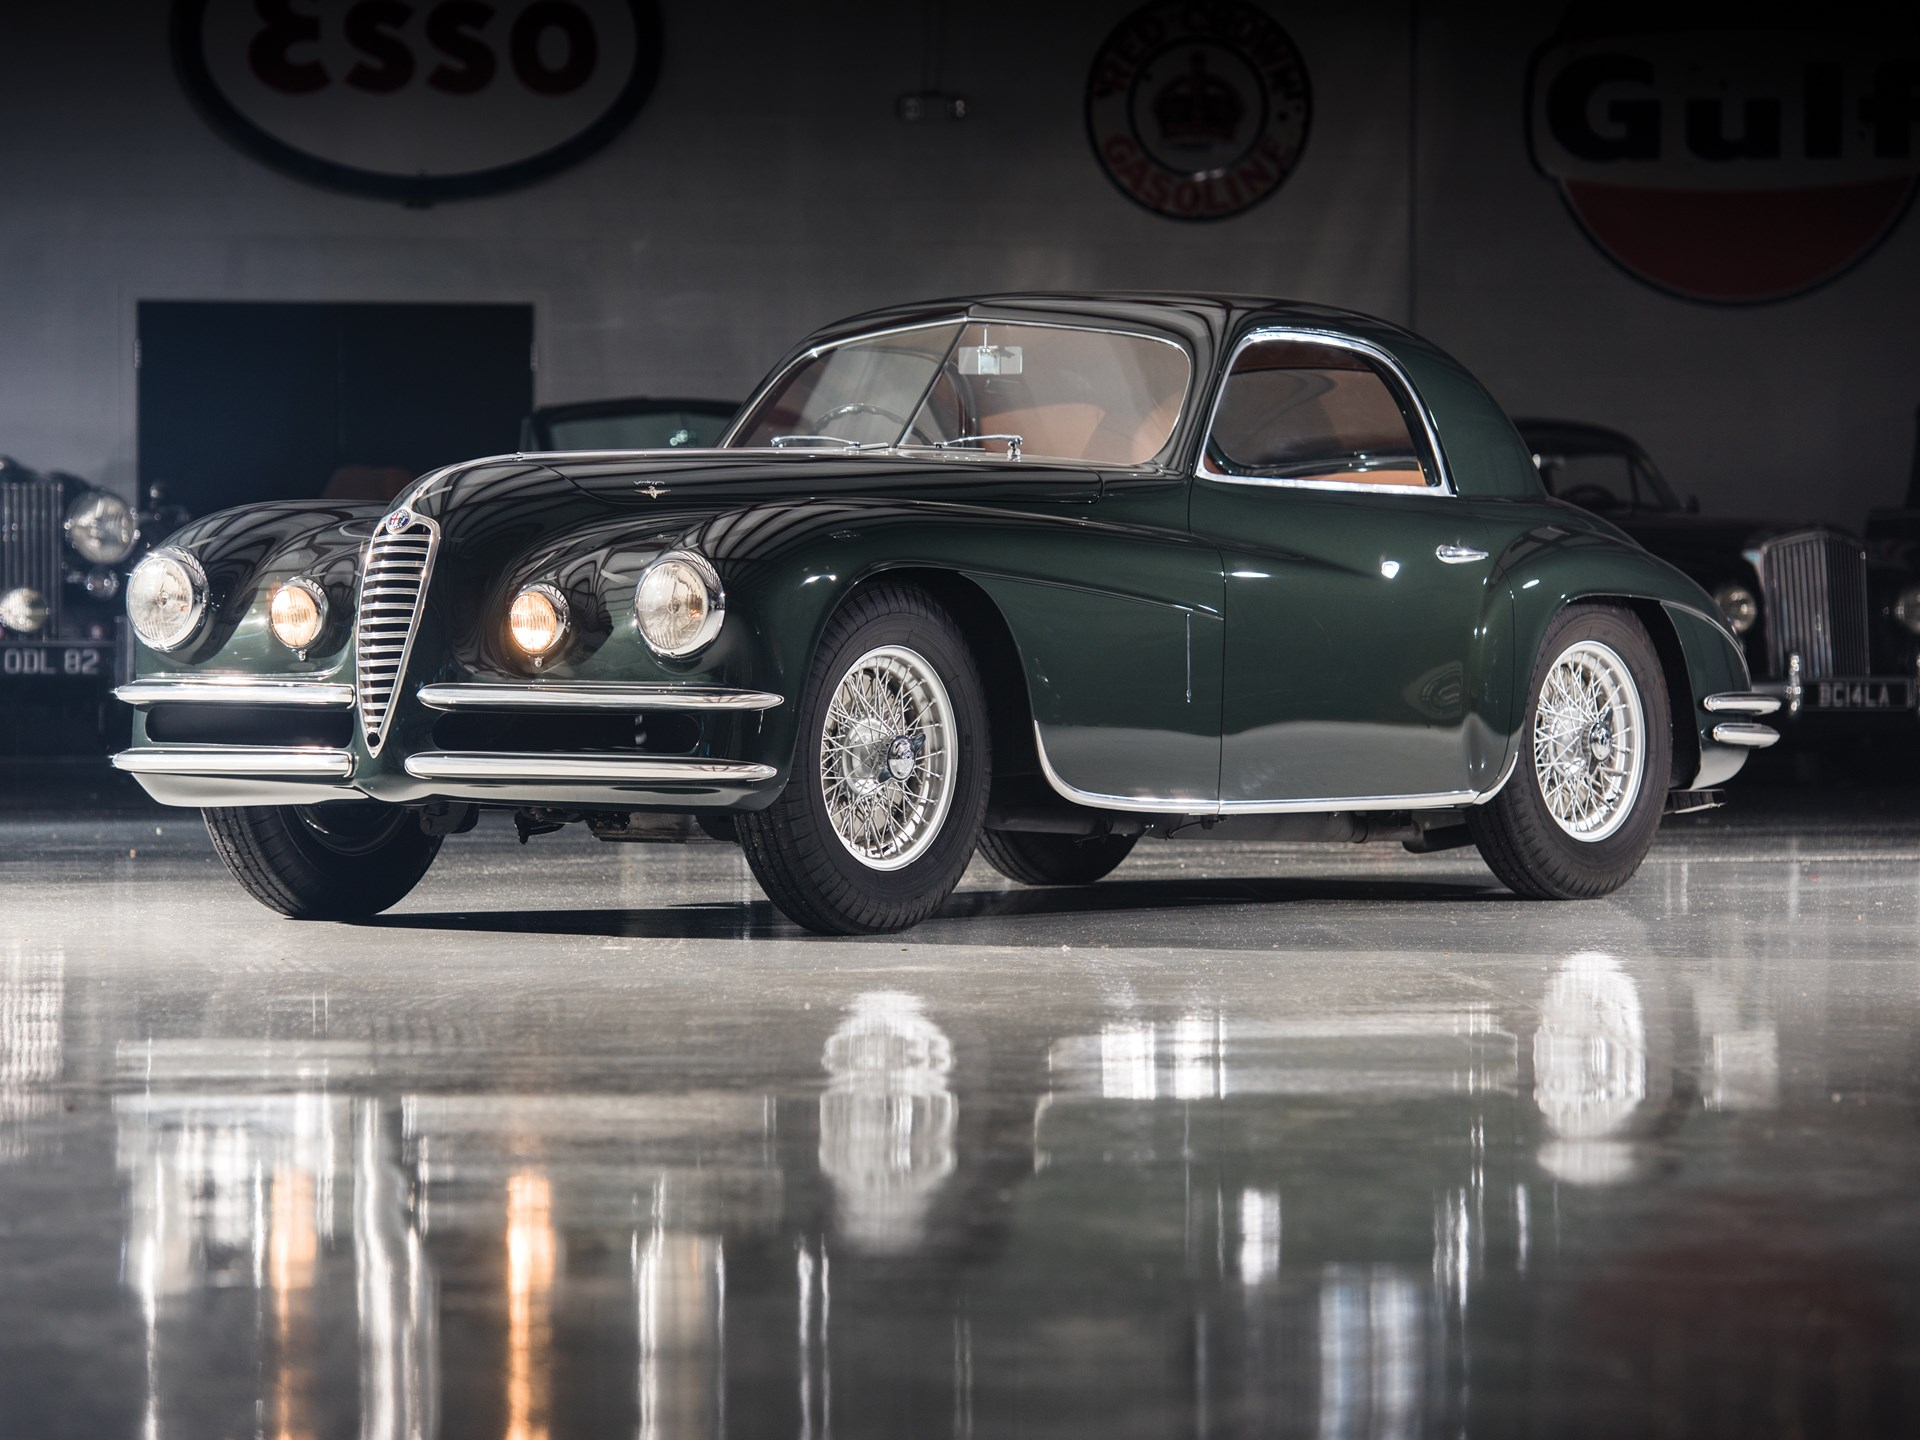 1950 Alfa Romeo 6C 2500 SS Coupe by Touring